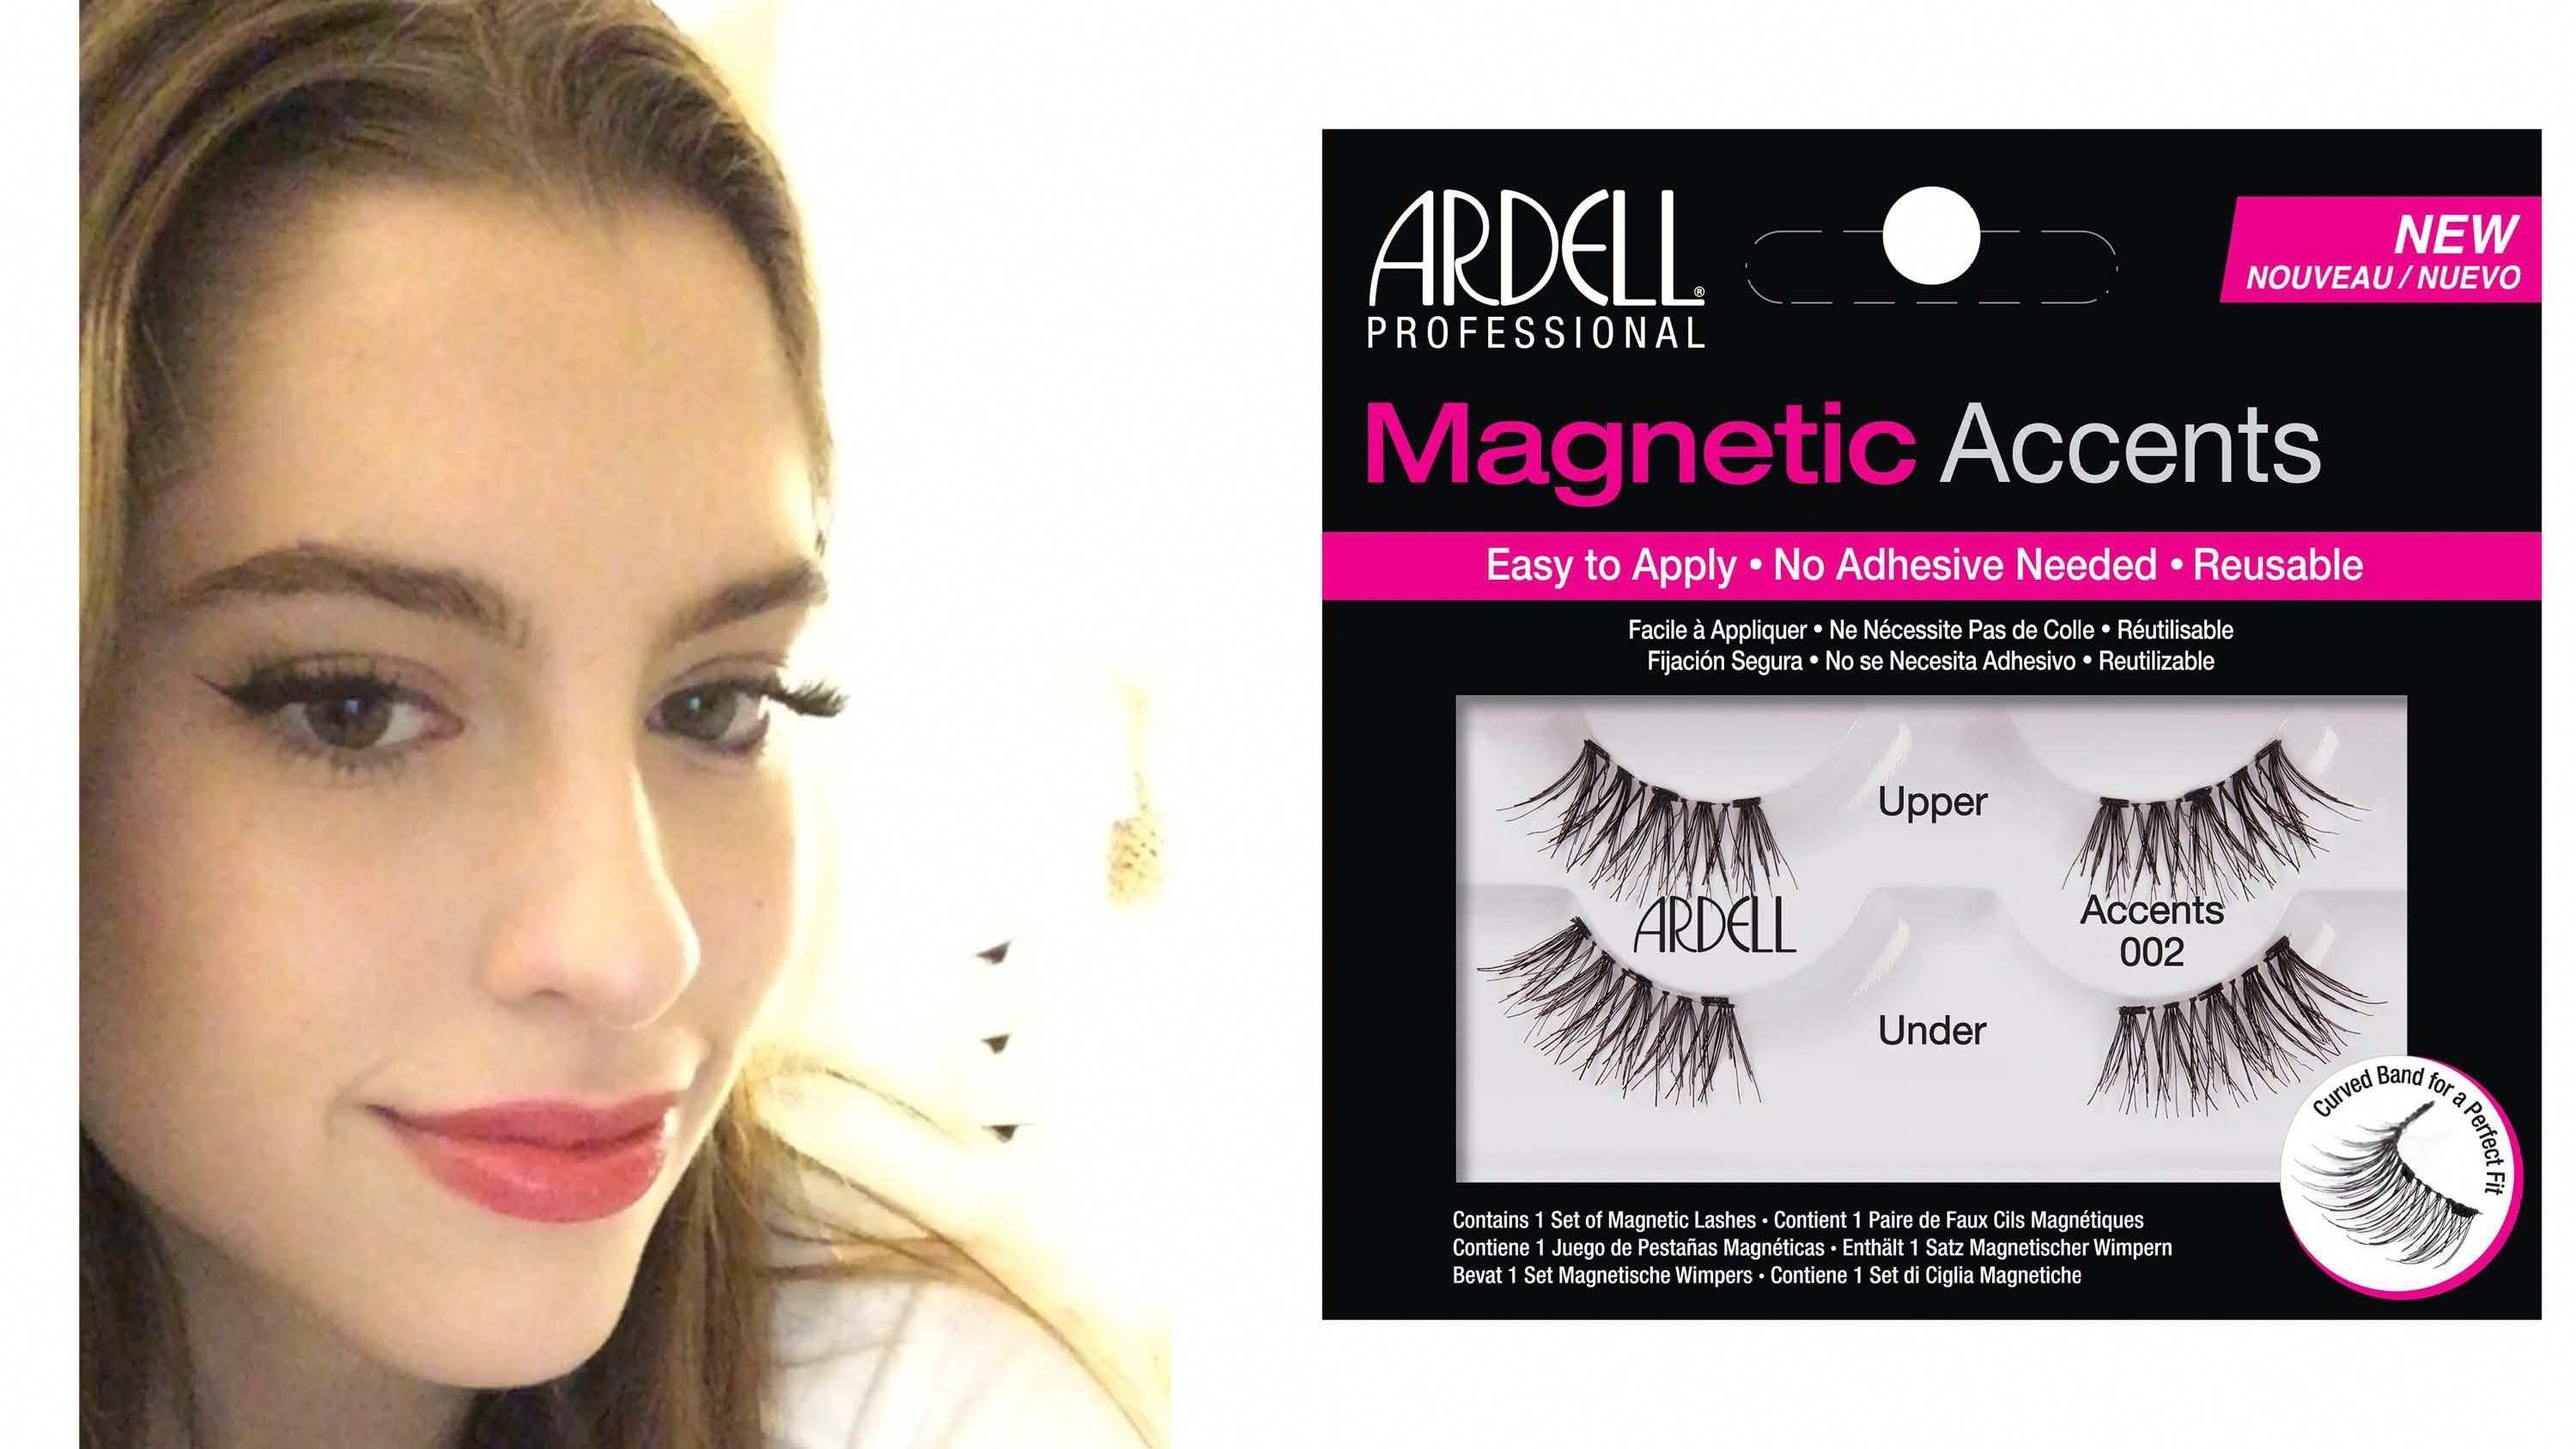 e5f1d25ce4a I can't apply false lashes to save my life, so I tried these magnetic false  lash strips and they are a real game-changer. #Lashes